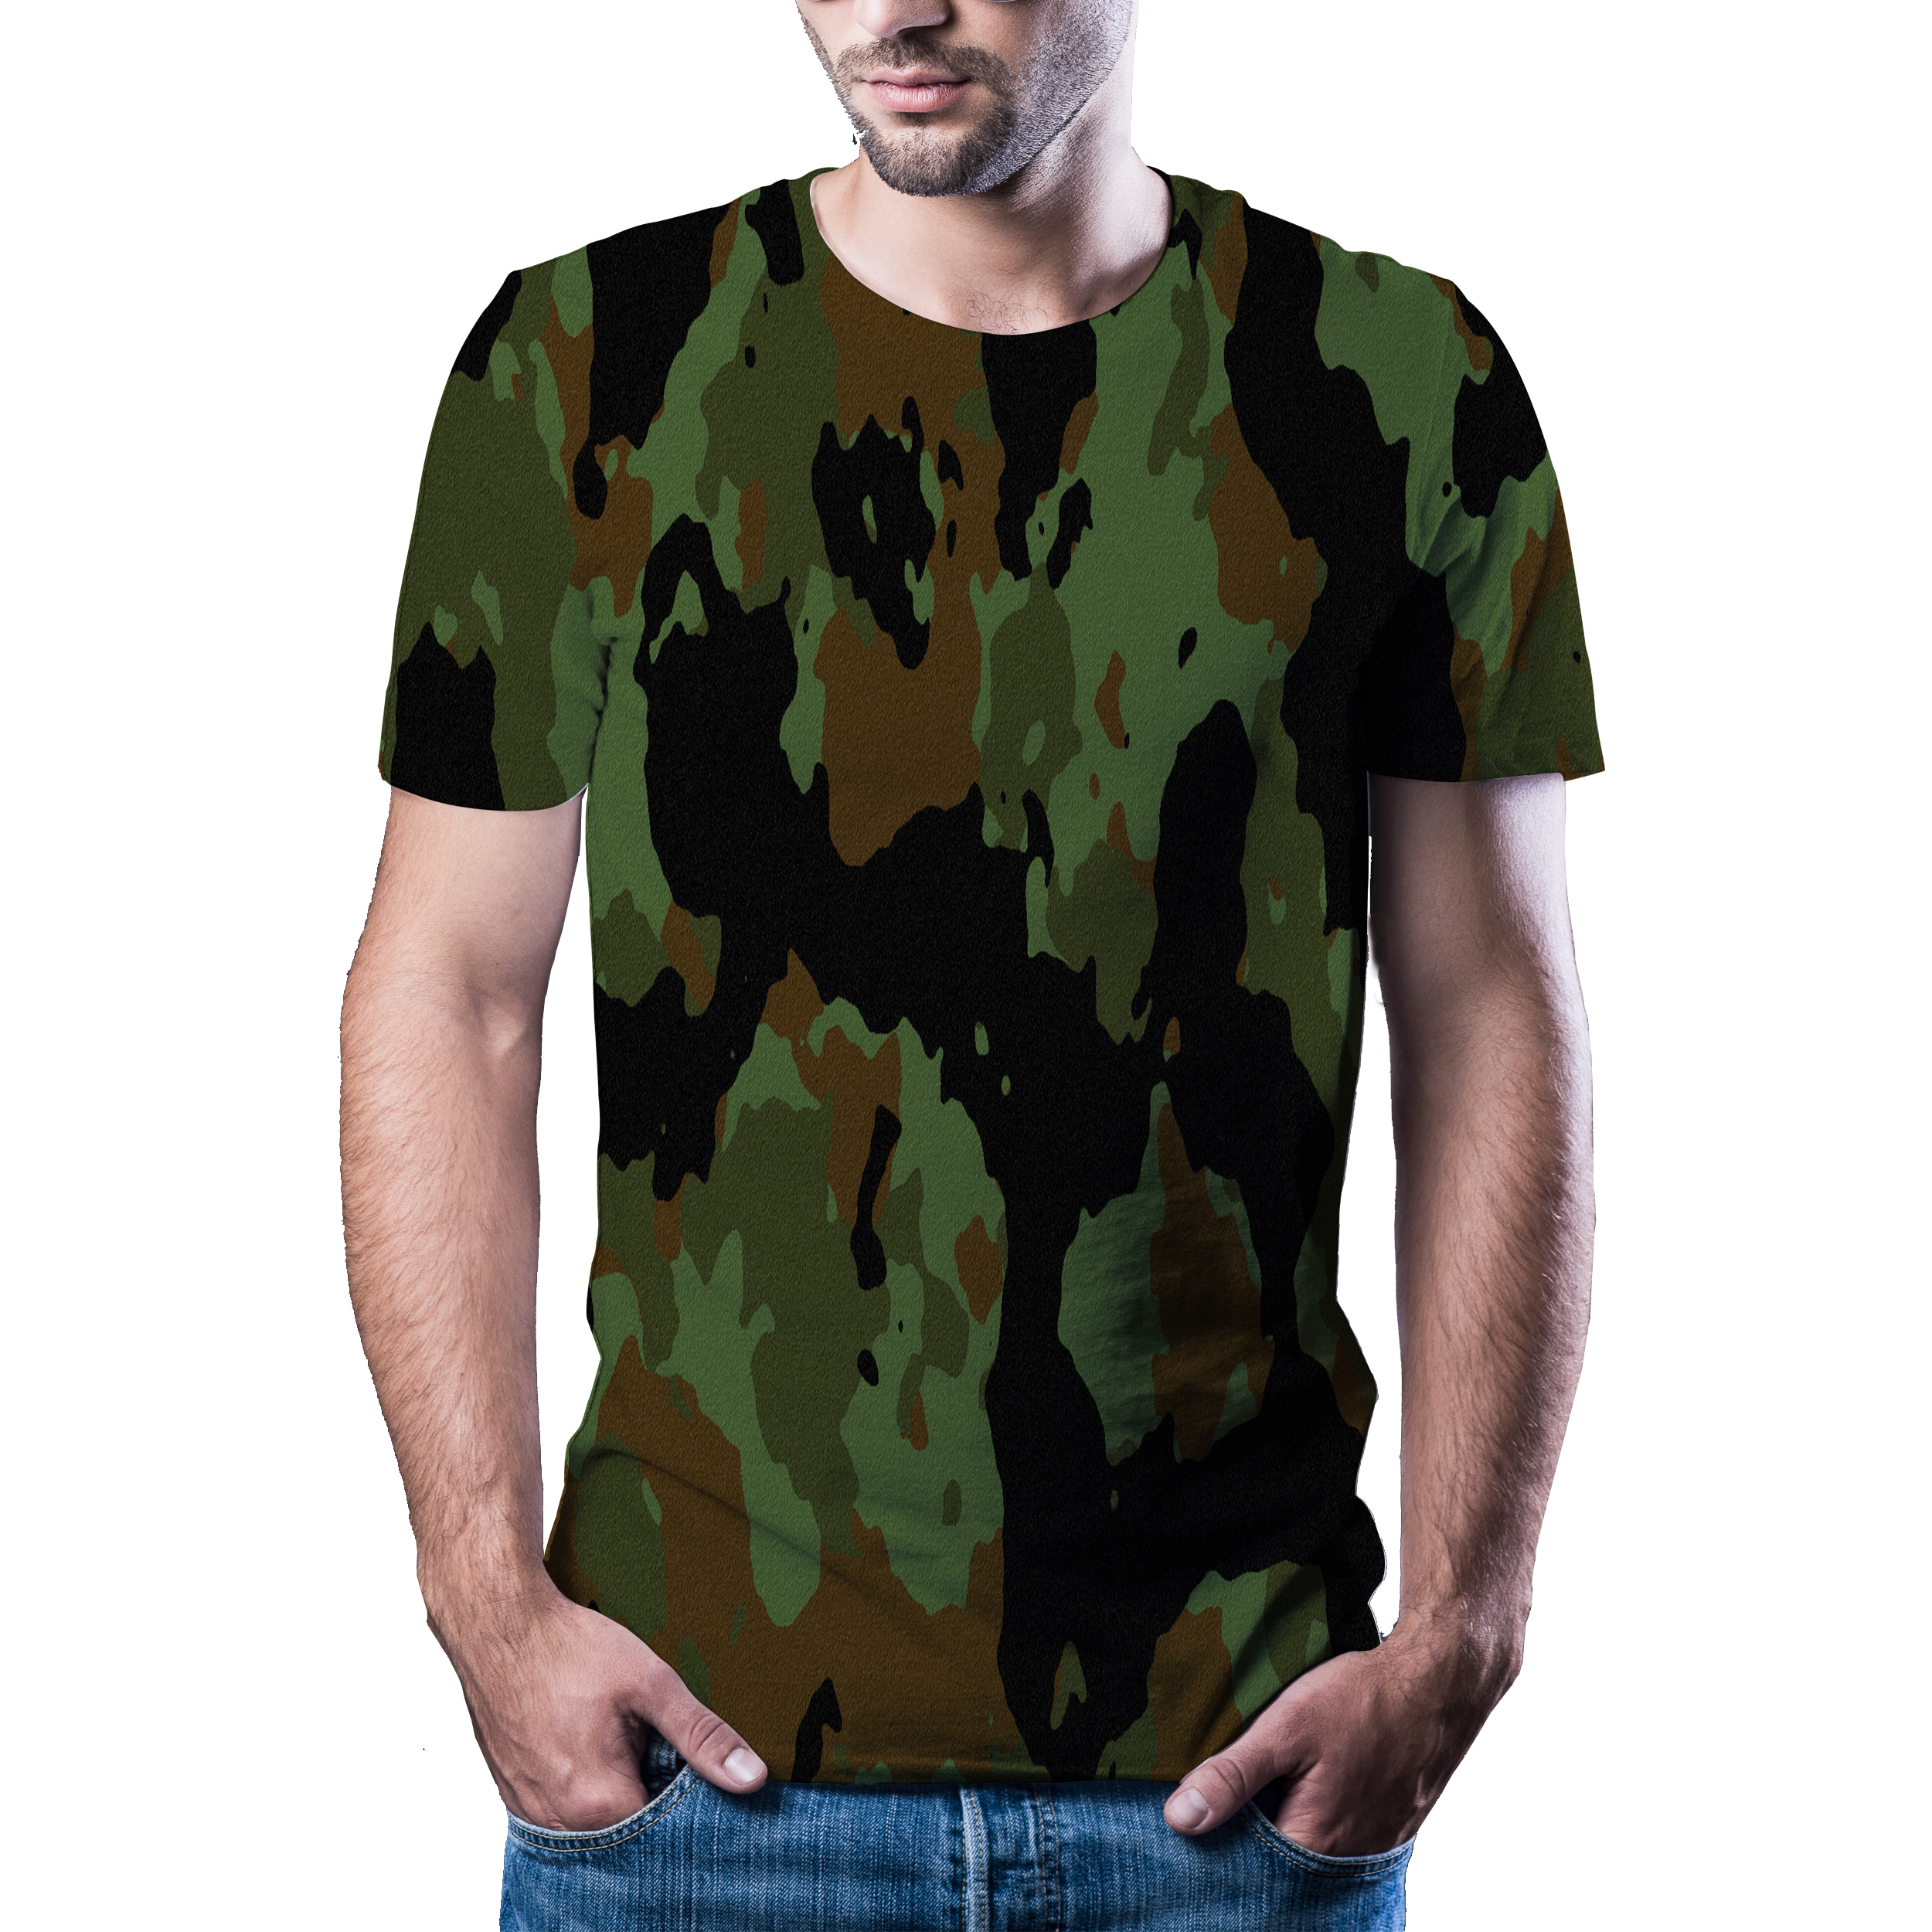 2020 new 3D t-shirt men's summer casual camouflage clothing camouflage style top 3D quick dry printed T-shirt